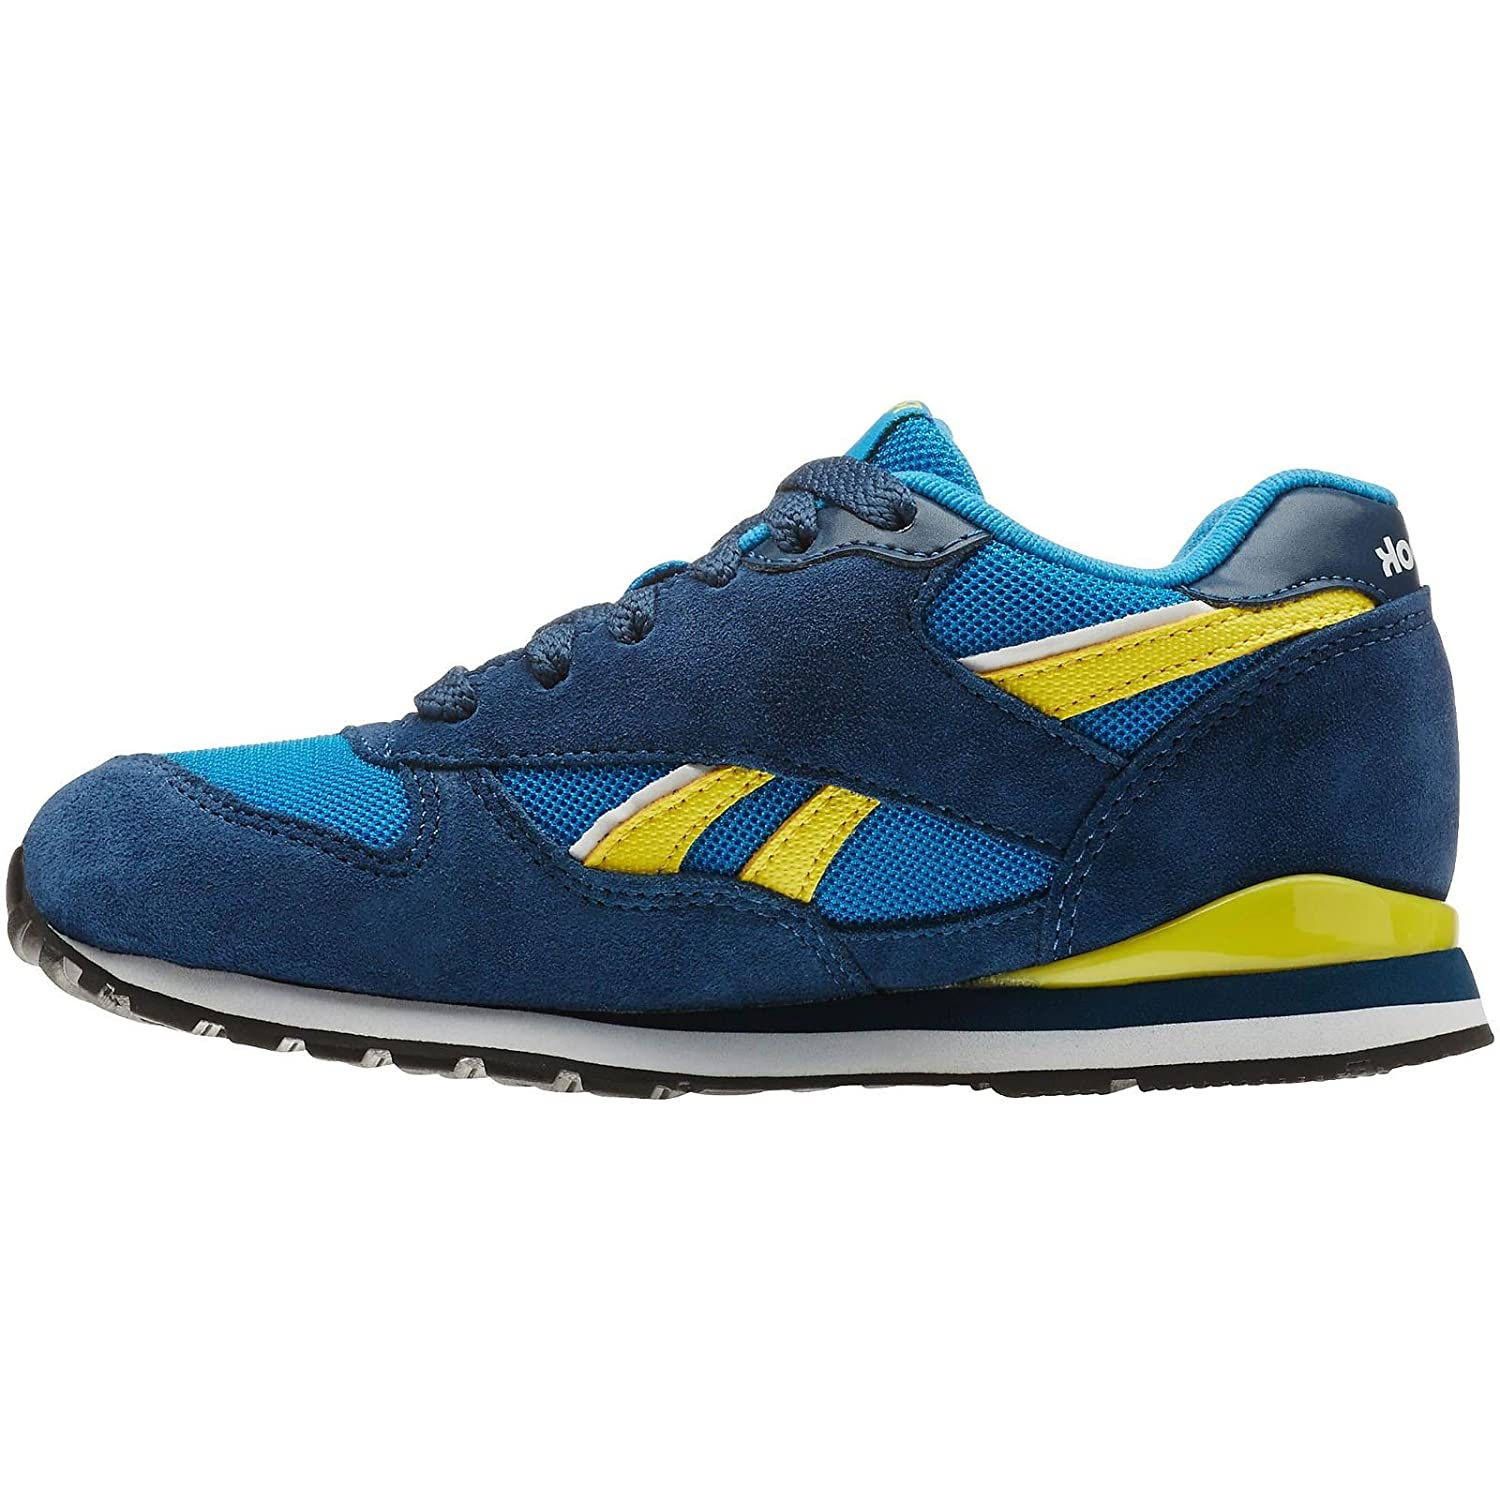 Reebok Classic GL 2620 Blue Youths Trainers Size 6 UK: Amazon.fr:  Chaussures et Sacs